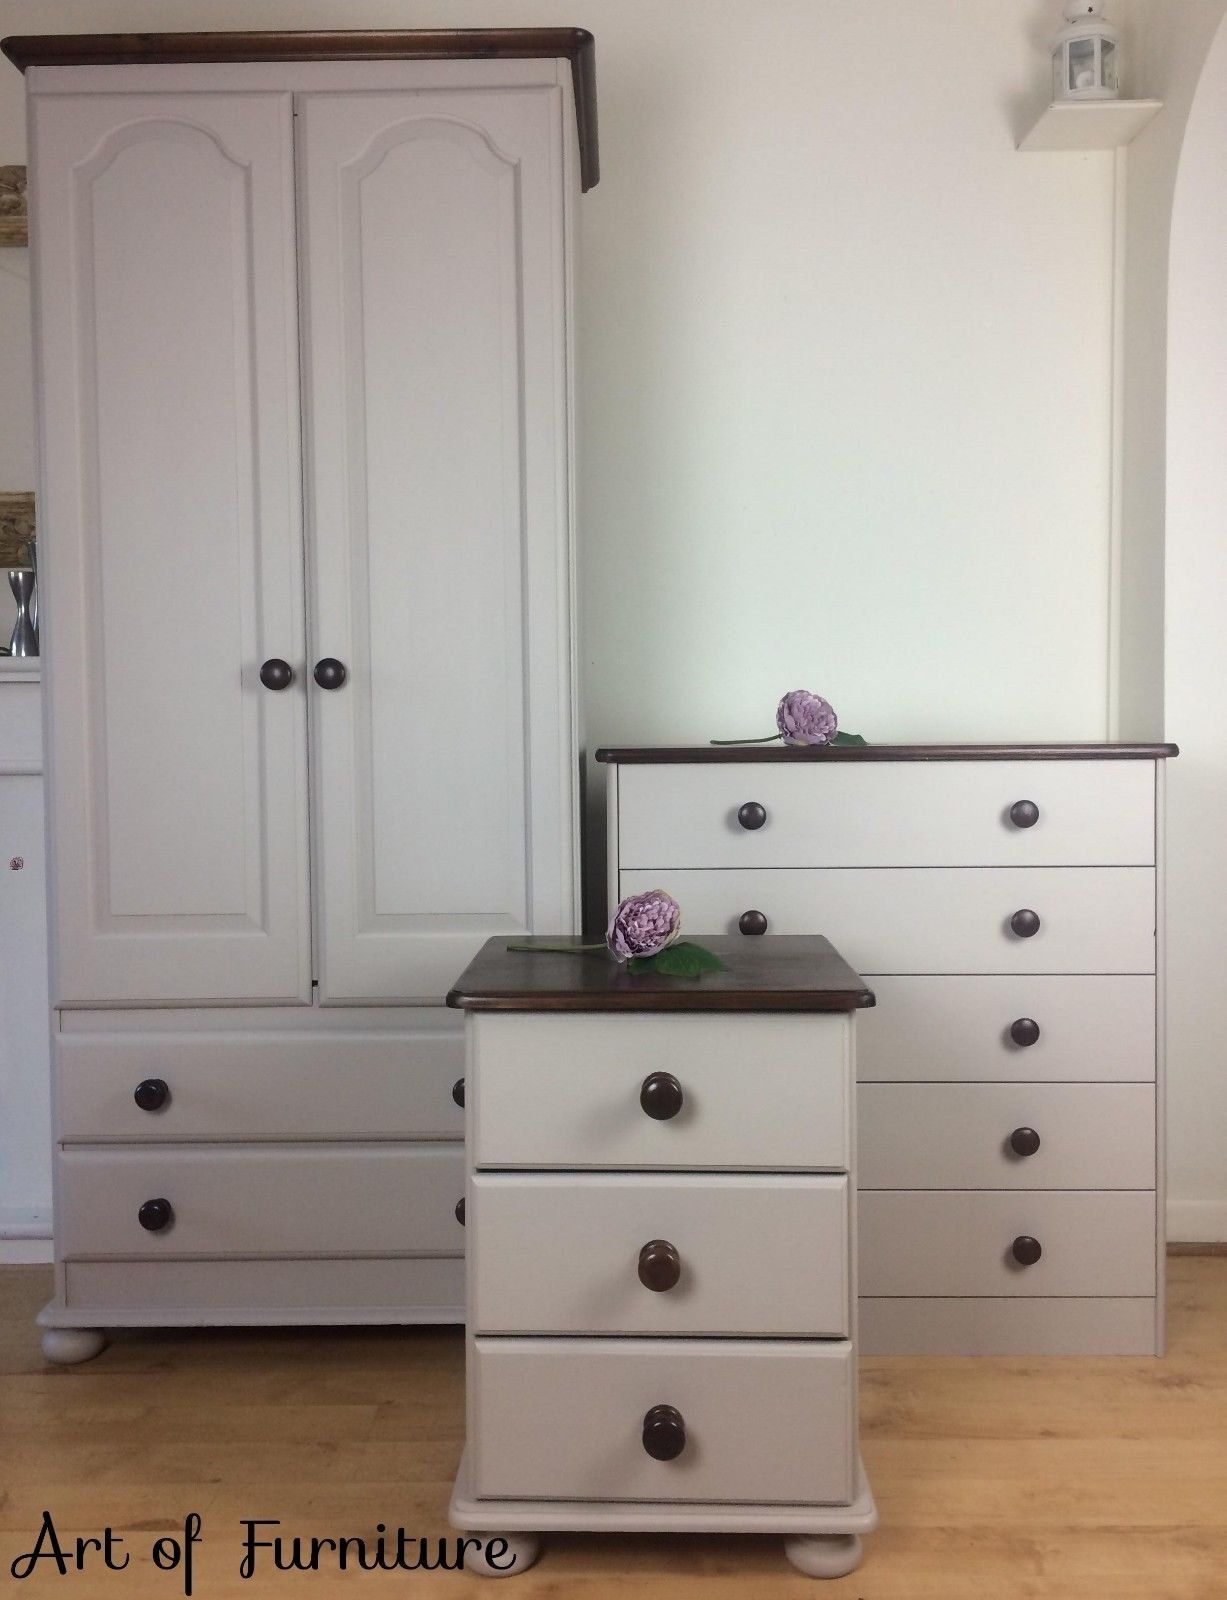 Sold pine rustic country bedroom furniture set of chest of drawers